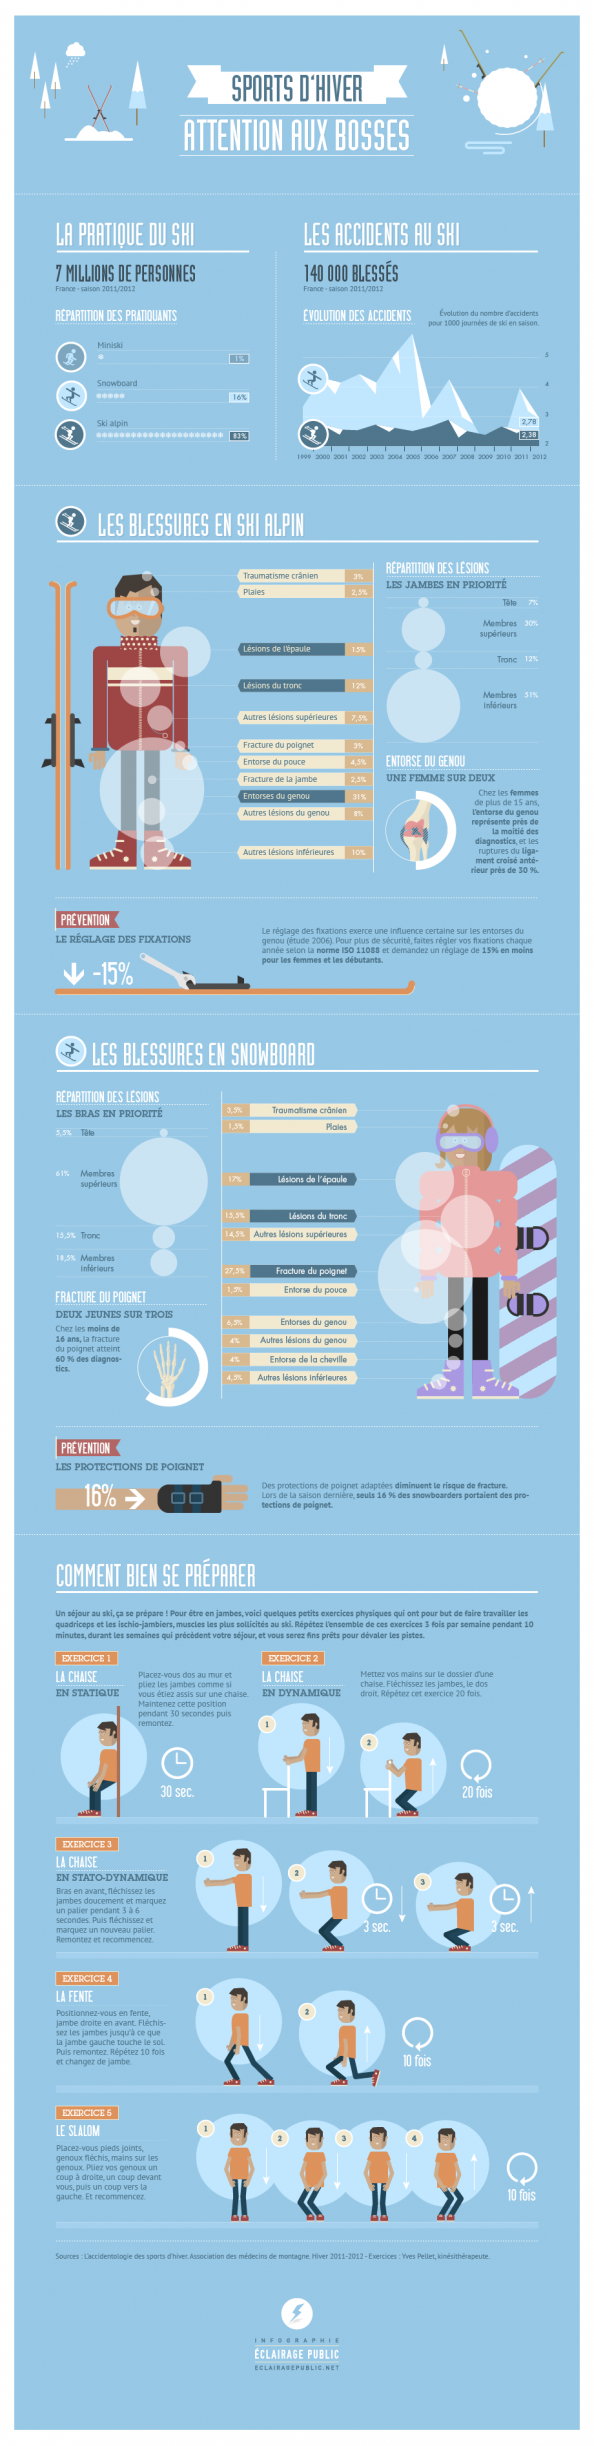 Sports d'hiver : attention aux bosses ! Infographic